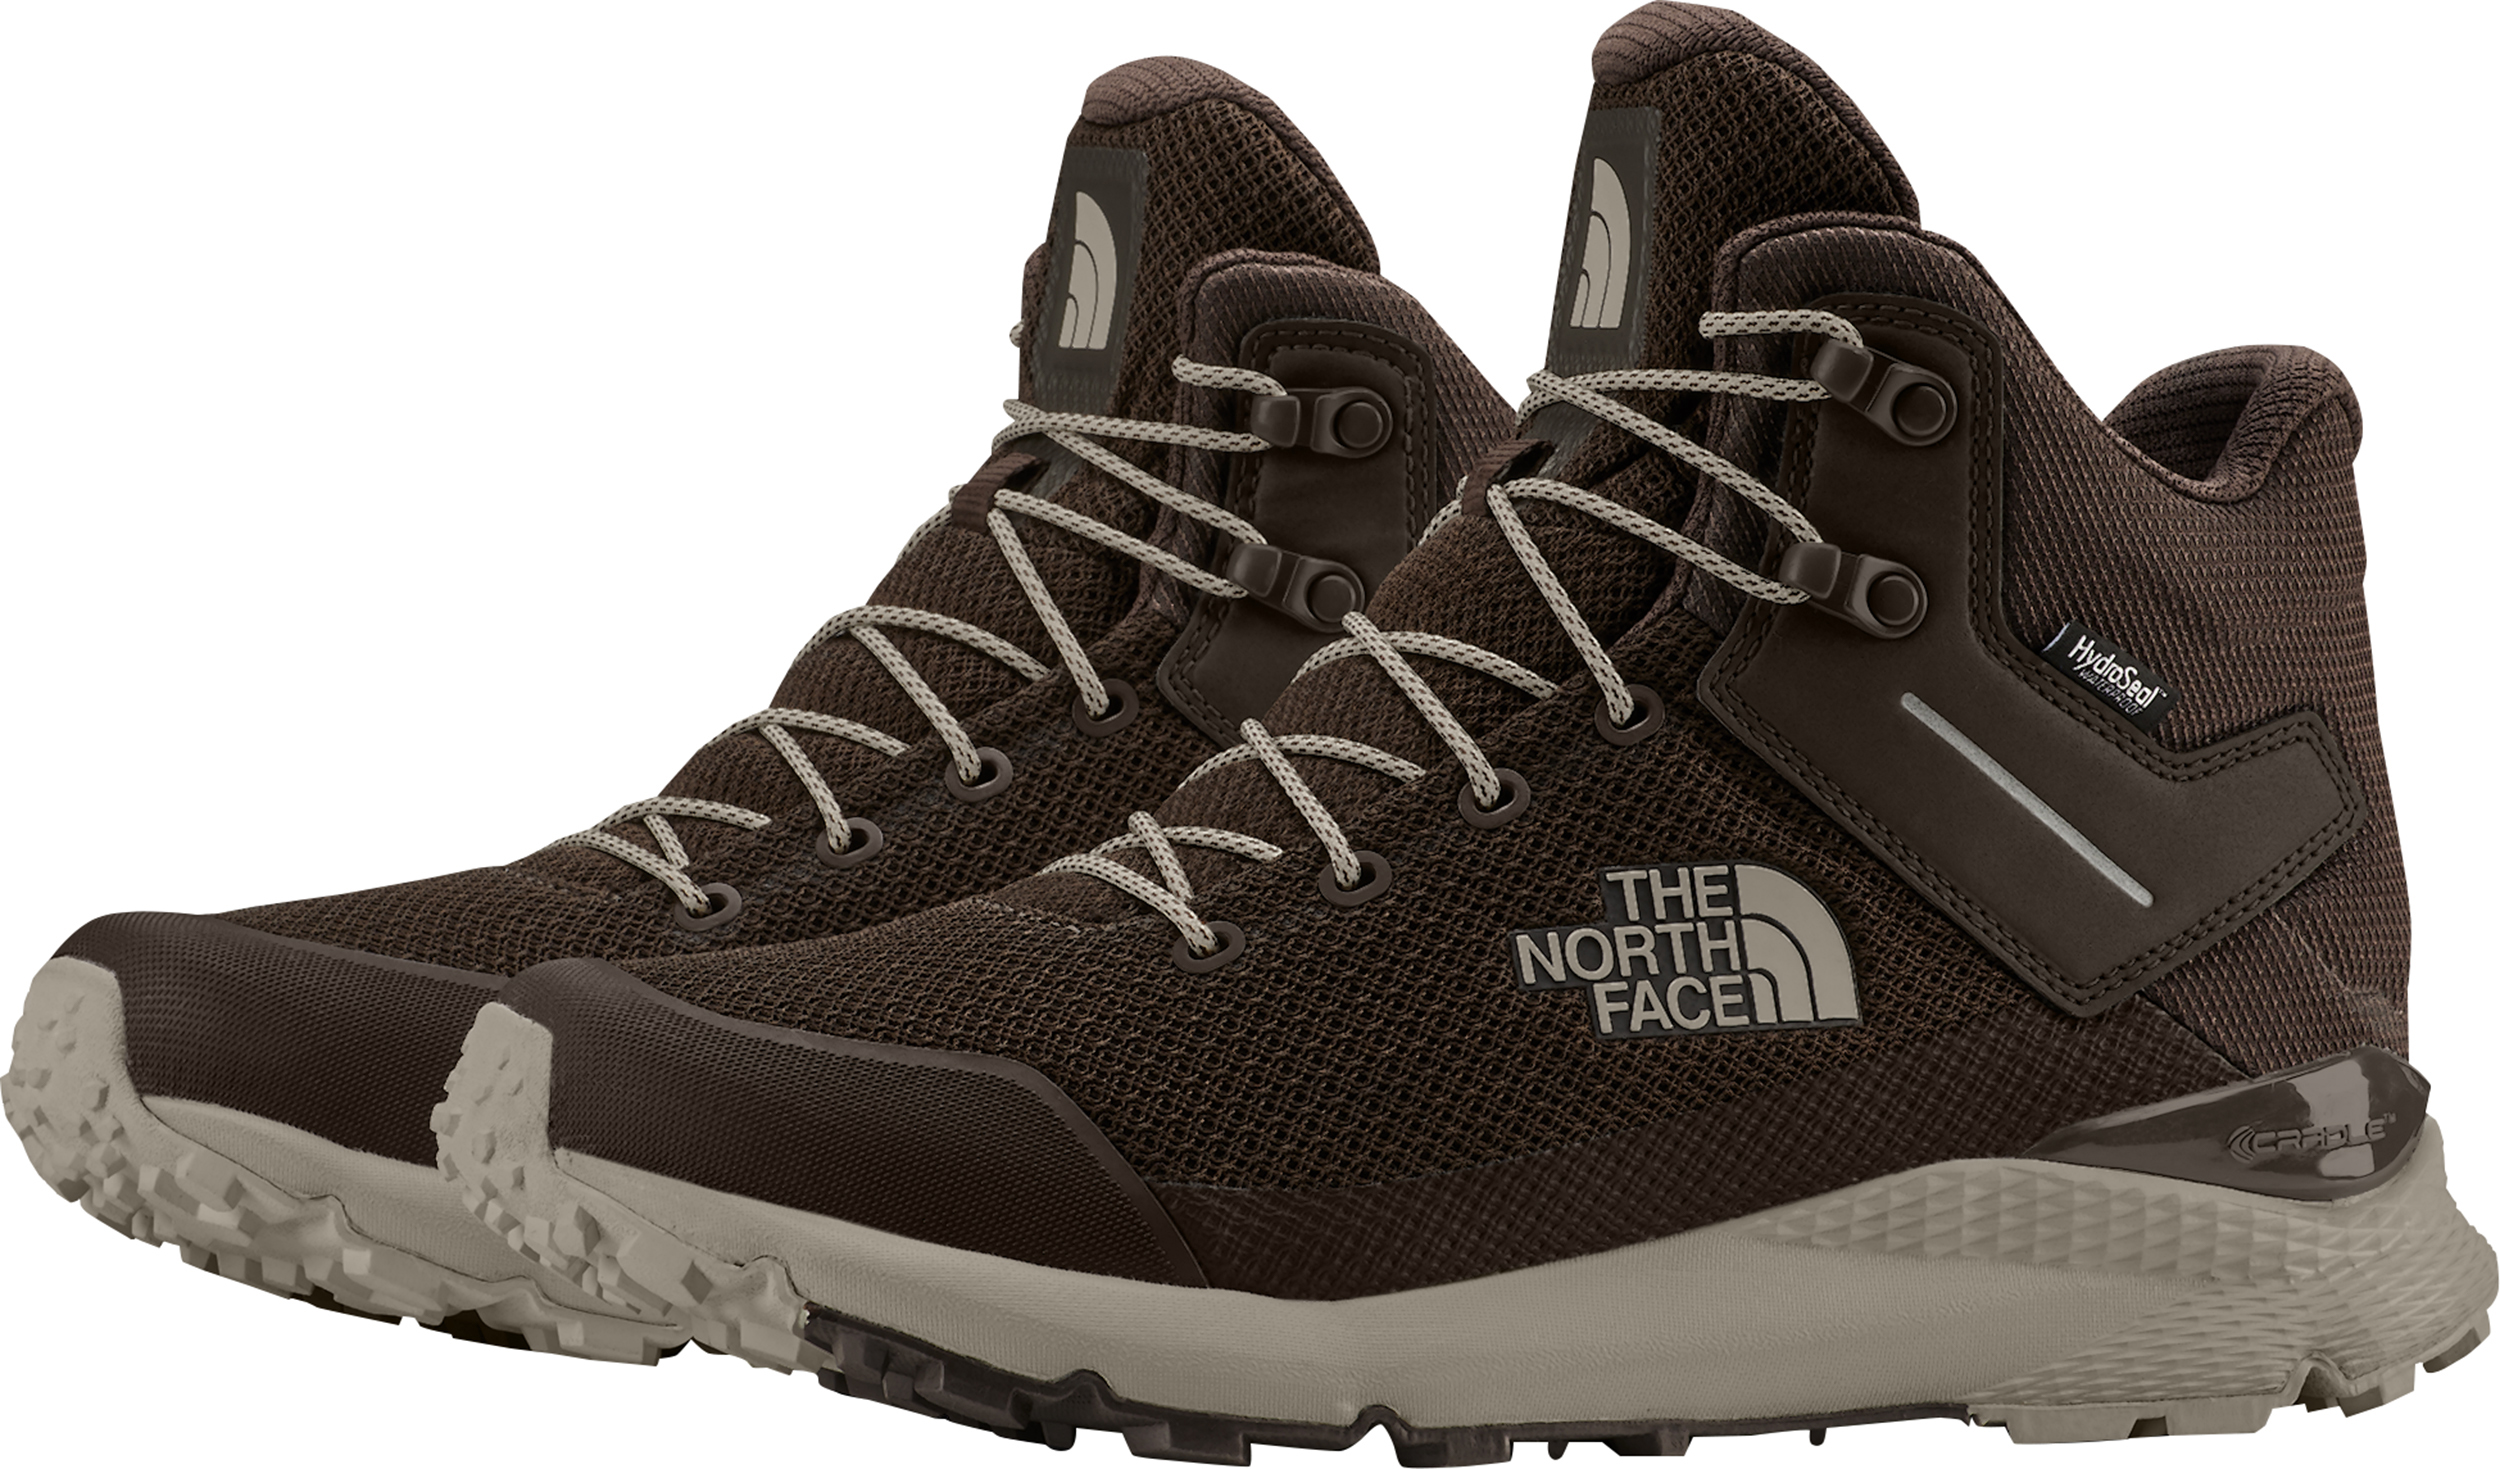 The North Face Vals Mid Waterproof